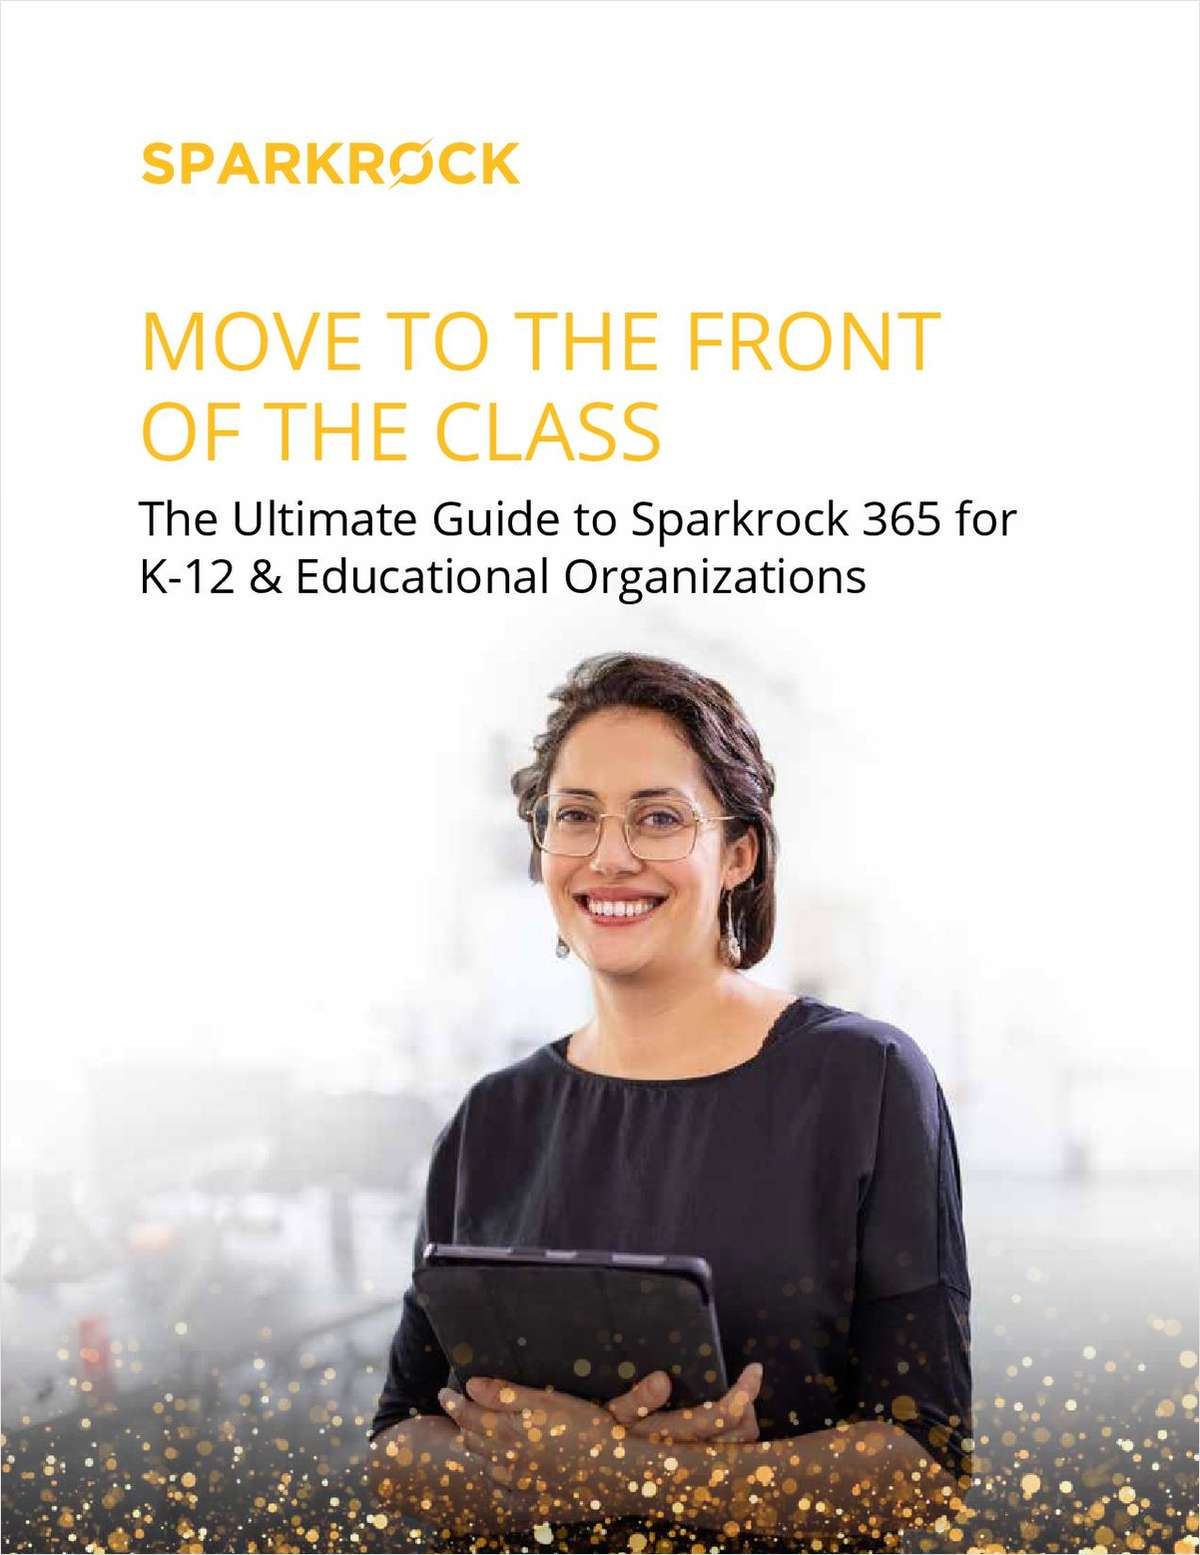 MOVE TO THE FRONT OF THE CLASS